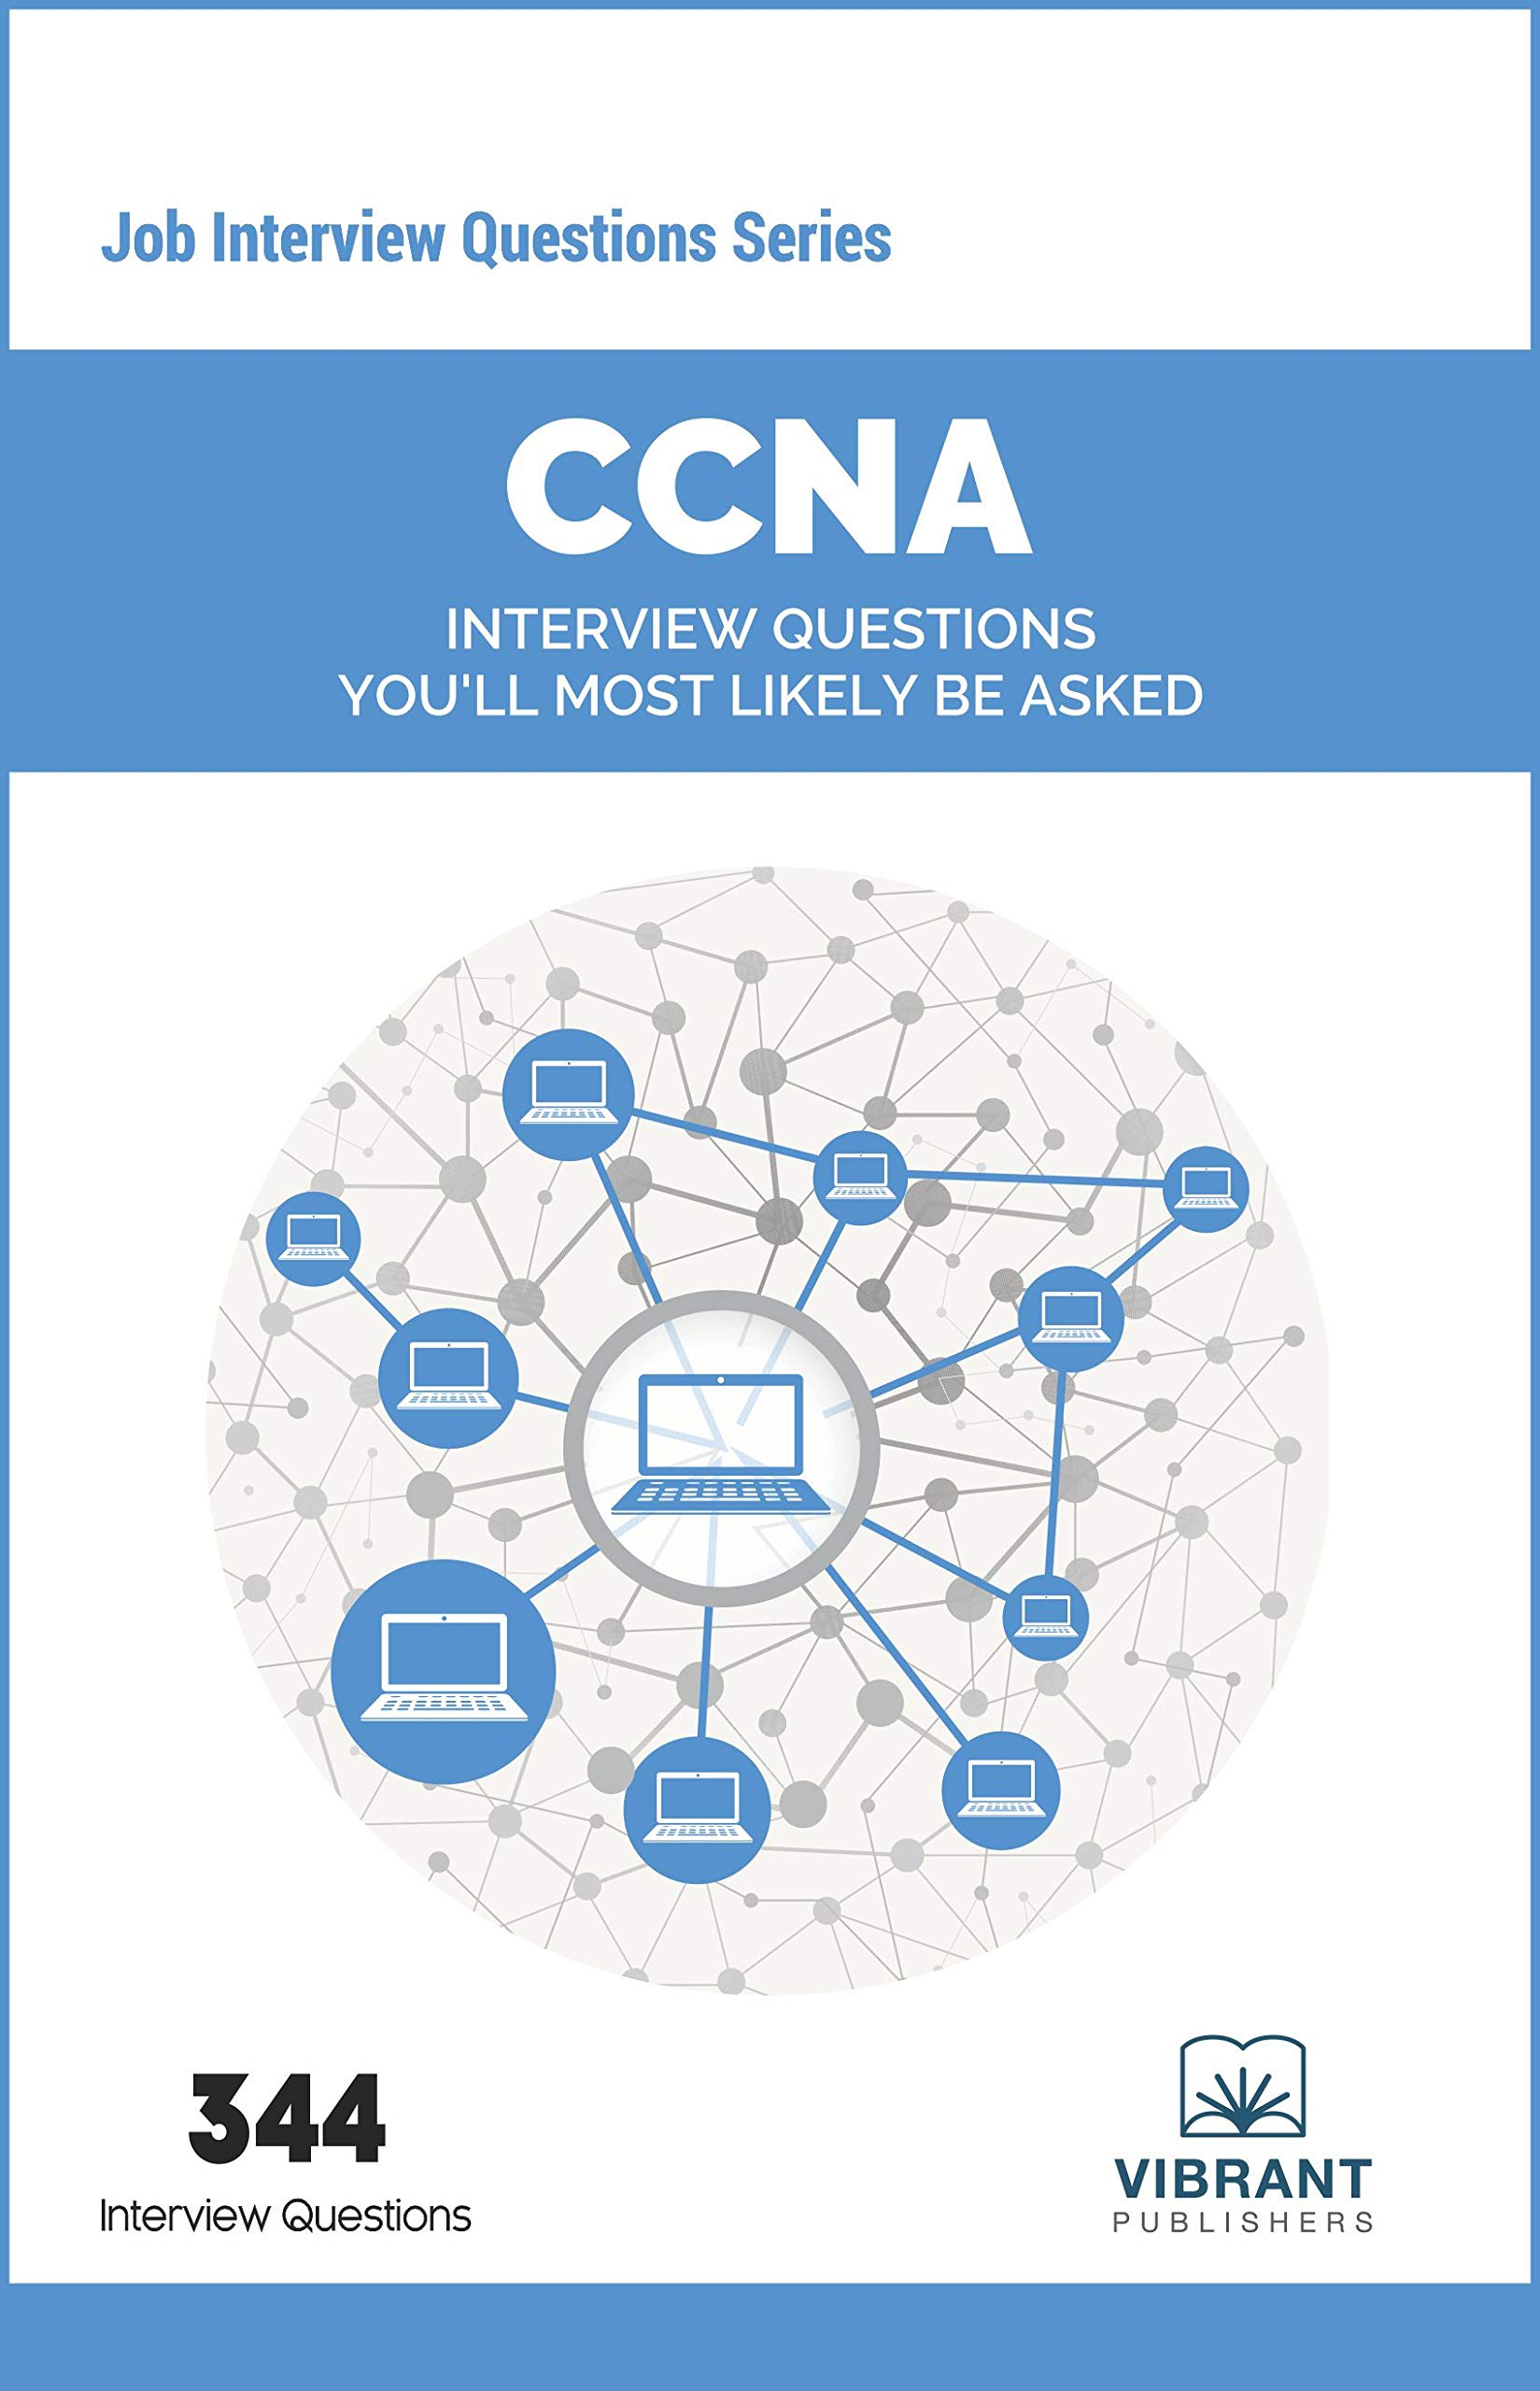 CCNA Interview Questions You'll Most Likely Be Asked: Volume 21 (Job Interview Questions) [Paperback] Vibrant Publishers